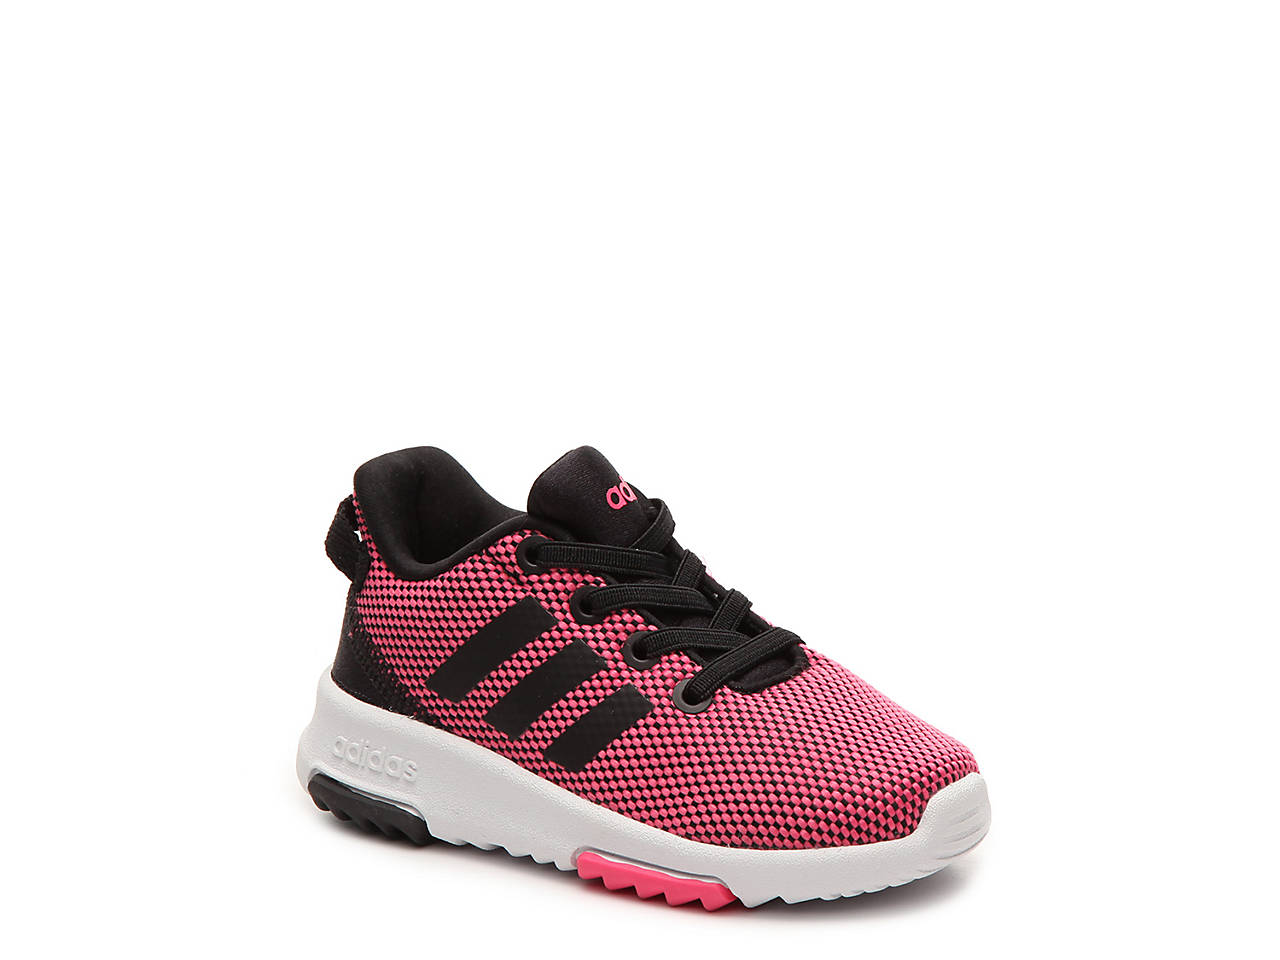 23b1b7a2c adidas Racer TR Infant   Toddler Sneaker Kids Shoes